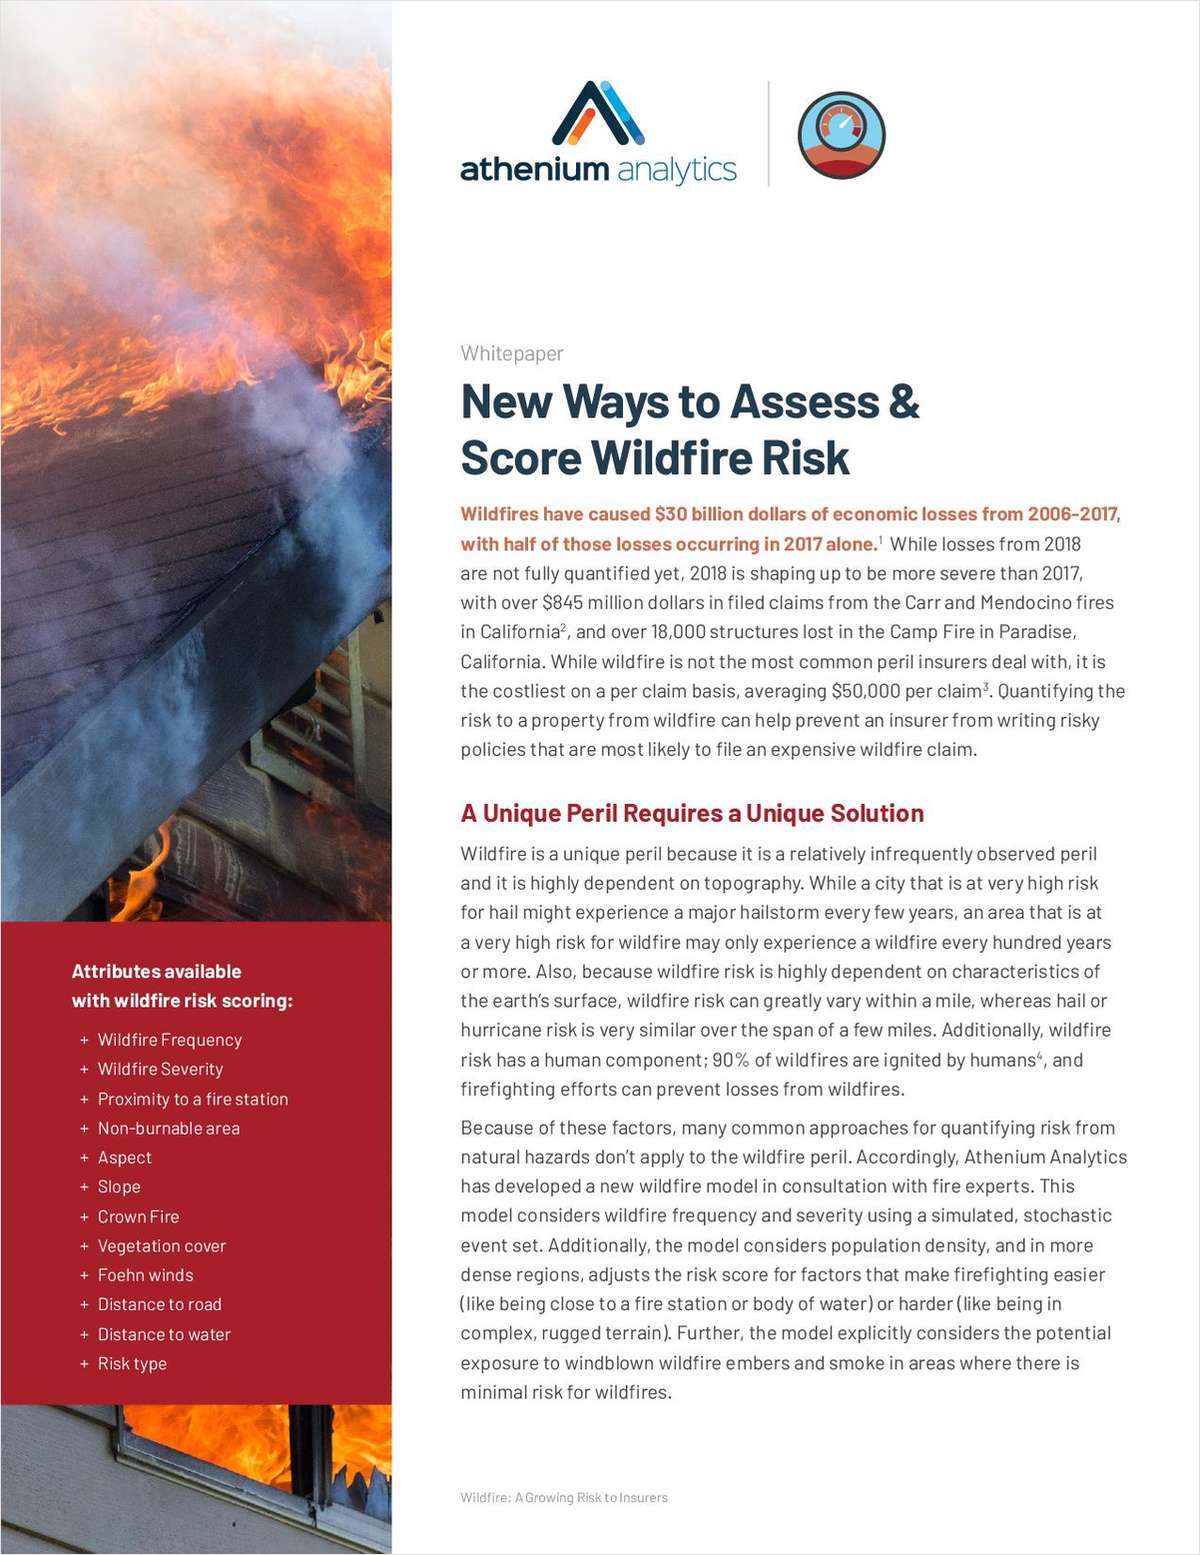 New Ways to Assess & Score Wildfire Risk